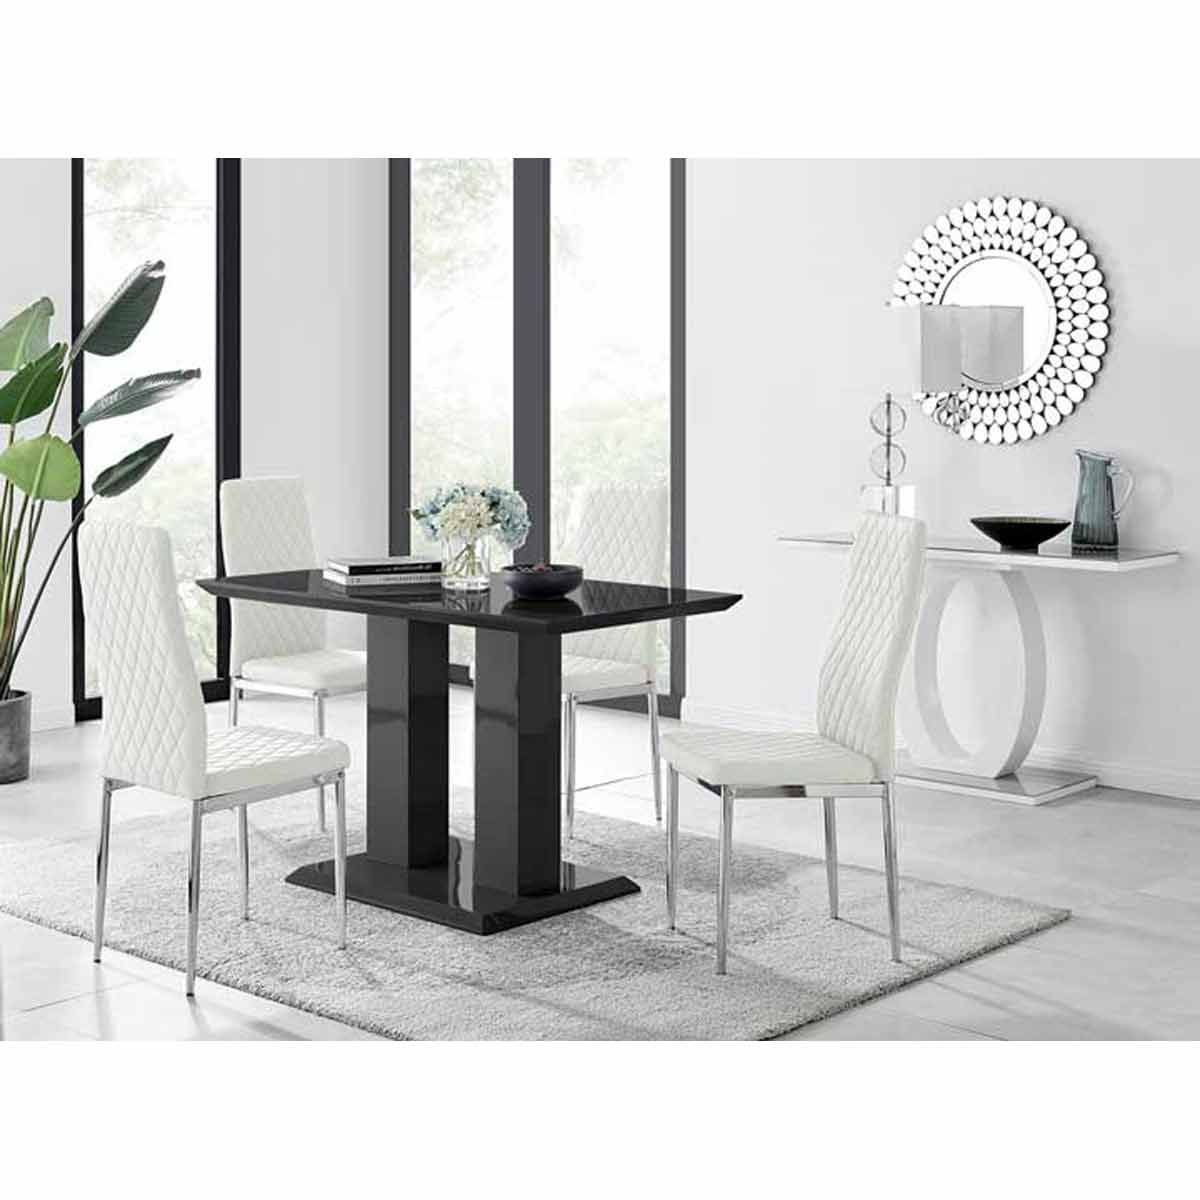 Furniture Box Imperia 4 Modern Black High Gloss Dining Table And 4 White Modern Milan Chairs Set